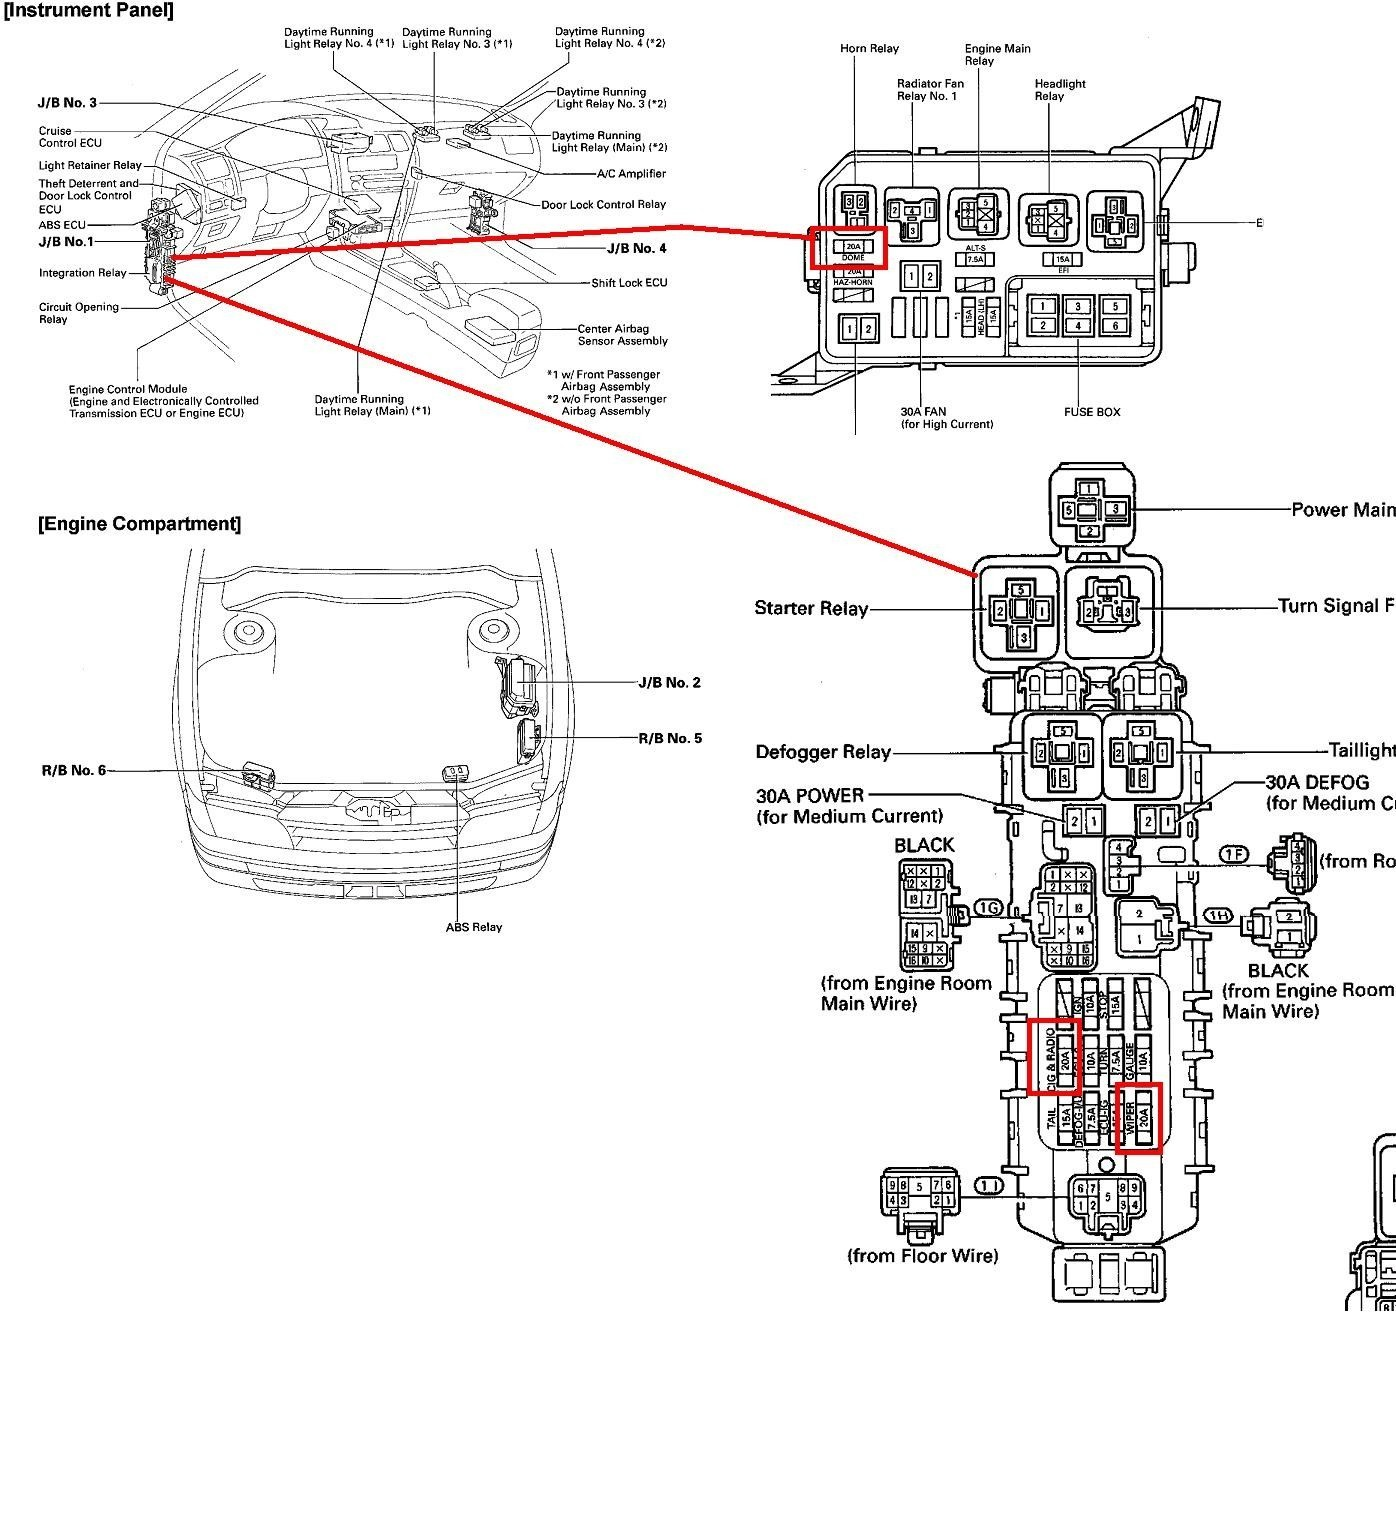 Realay Fuse Box Toyota Camry Wiring Diagrams Instructions